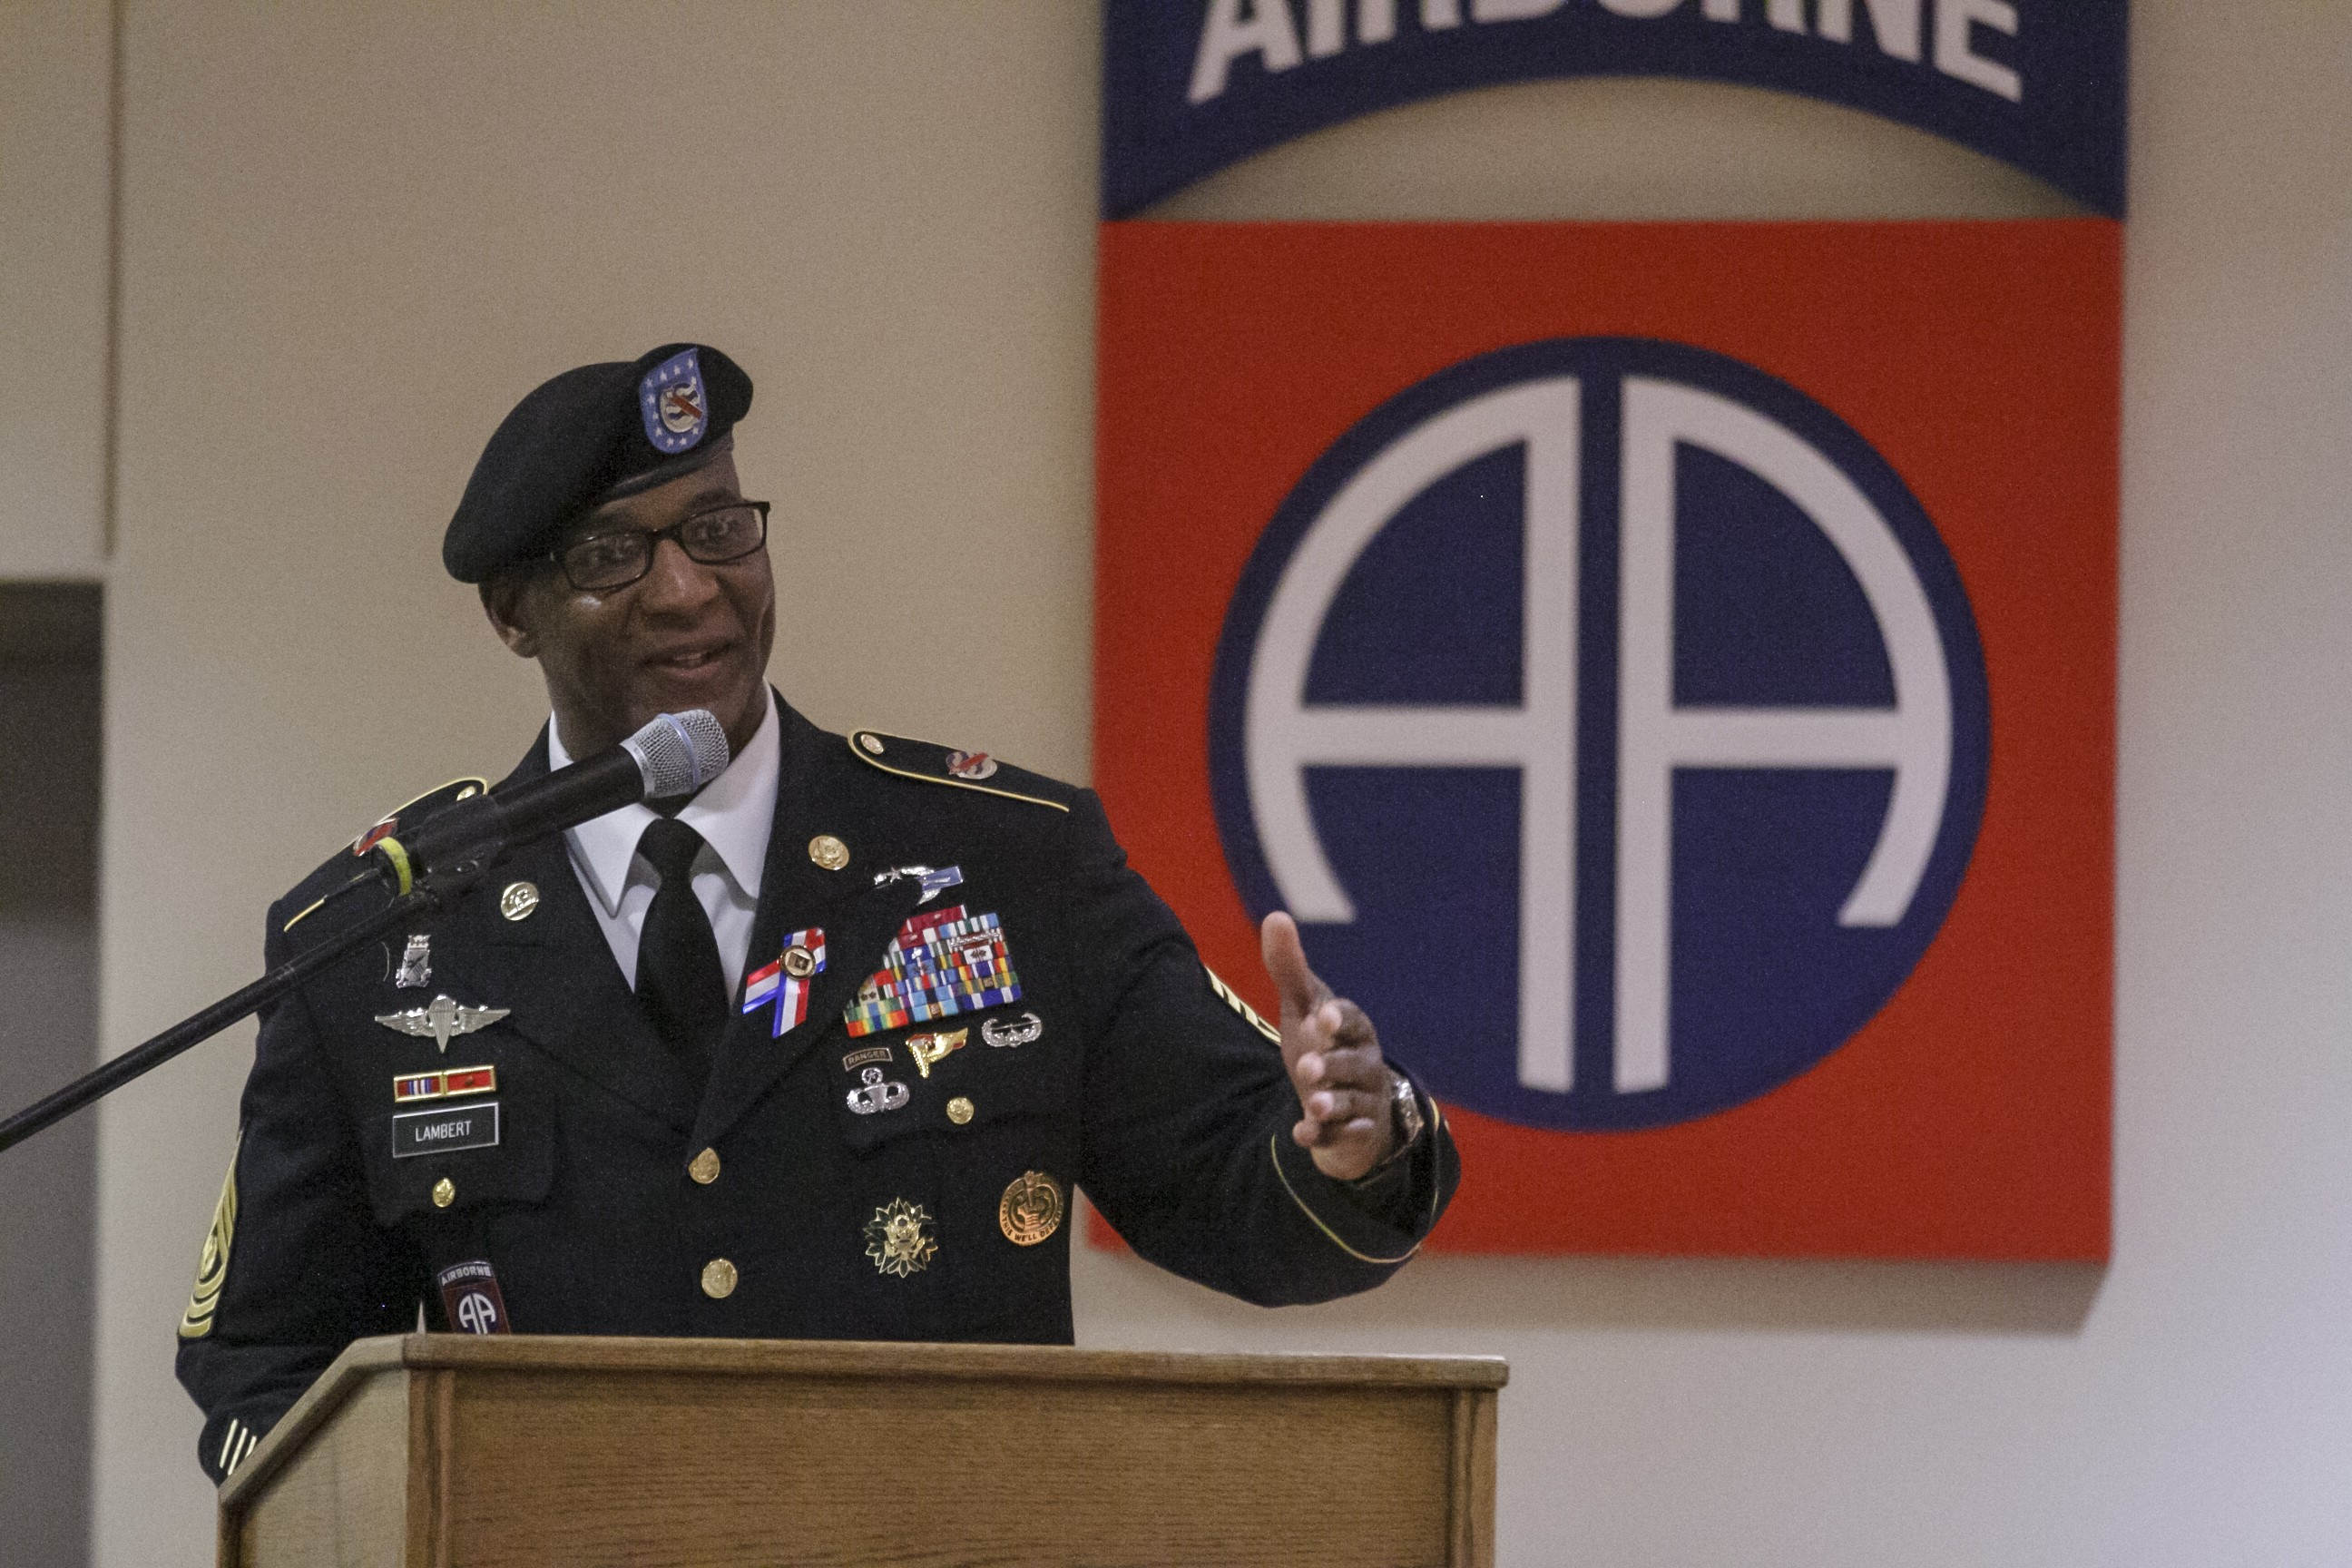 Command Sgt  Maj  Bryant Lambert Returns to the 82nd to Say